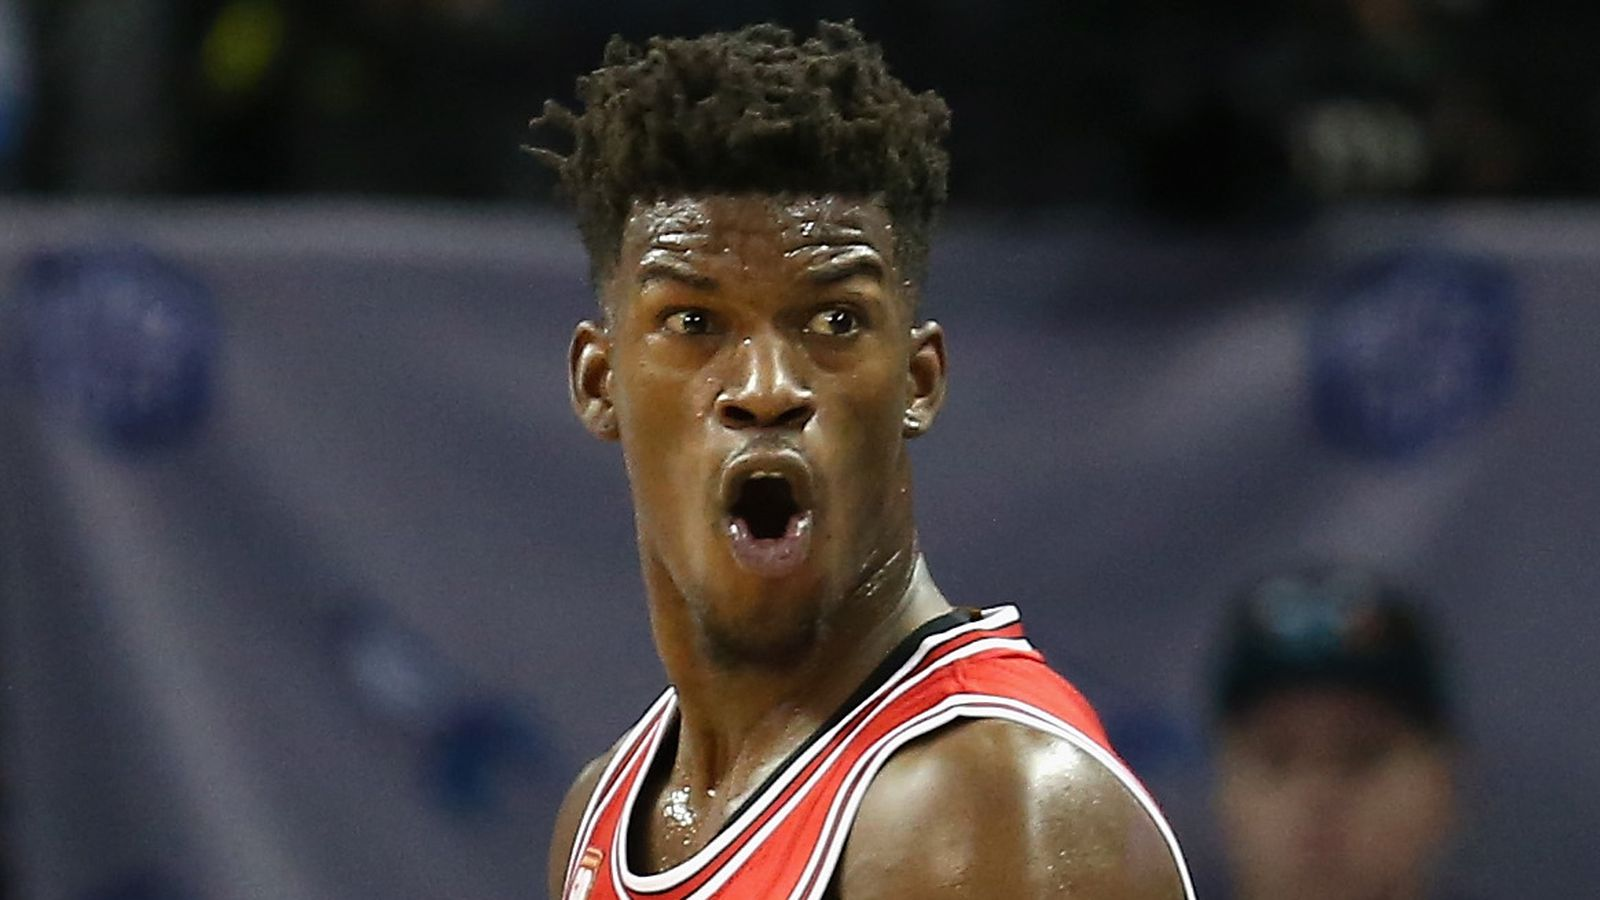 Butler who grew up 30 minutes outside of Houston admitted he felt some extra satisfaction in beating the Rockets his boyhood team in Game 3